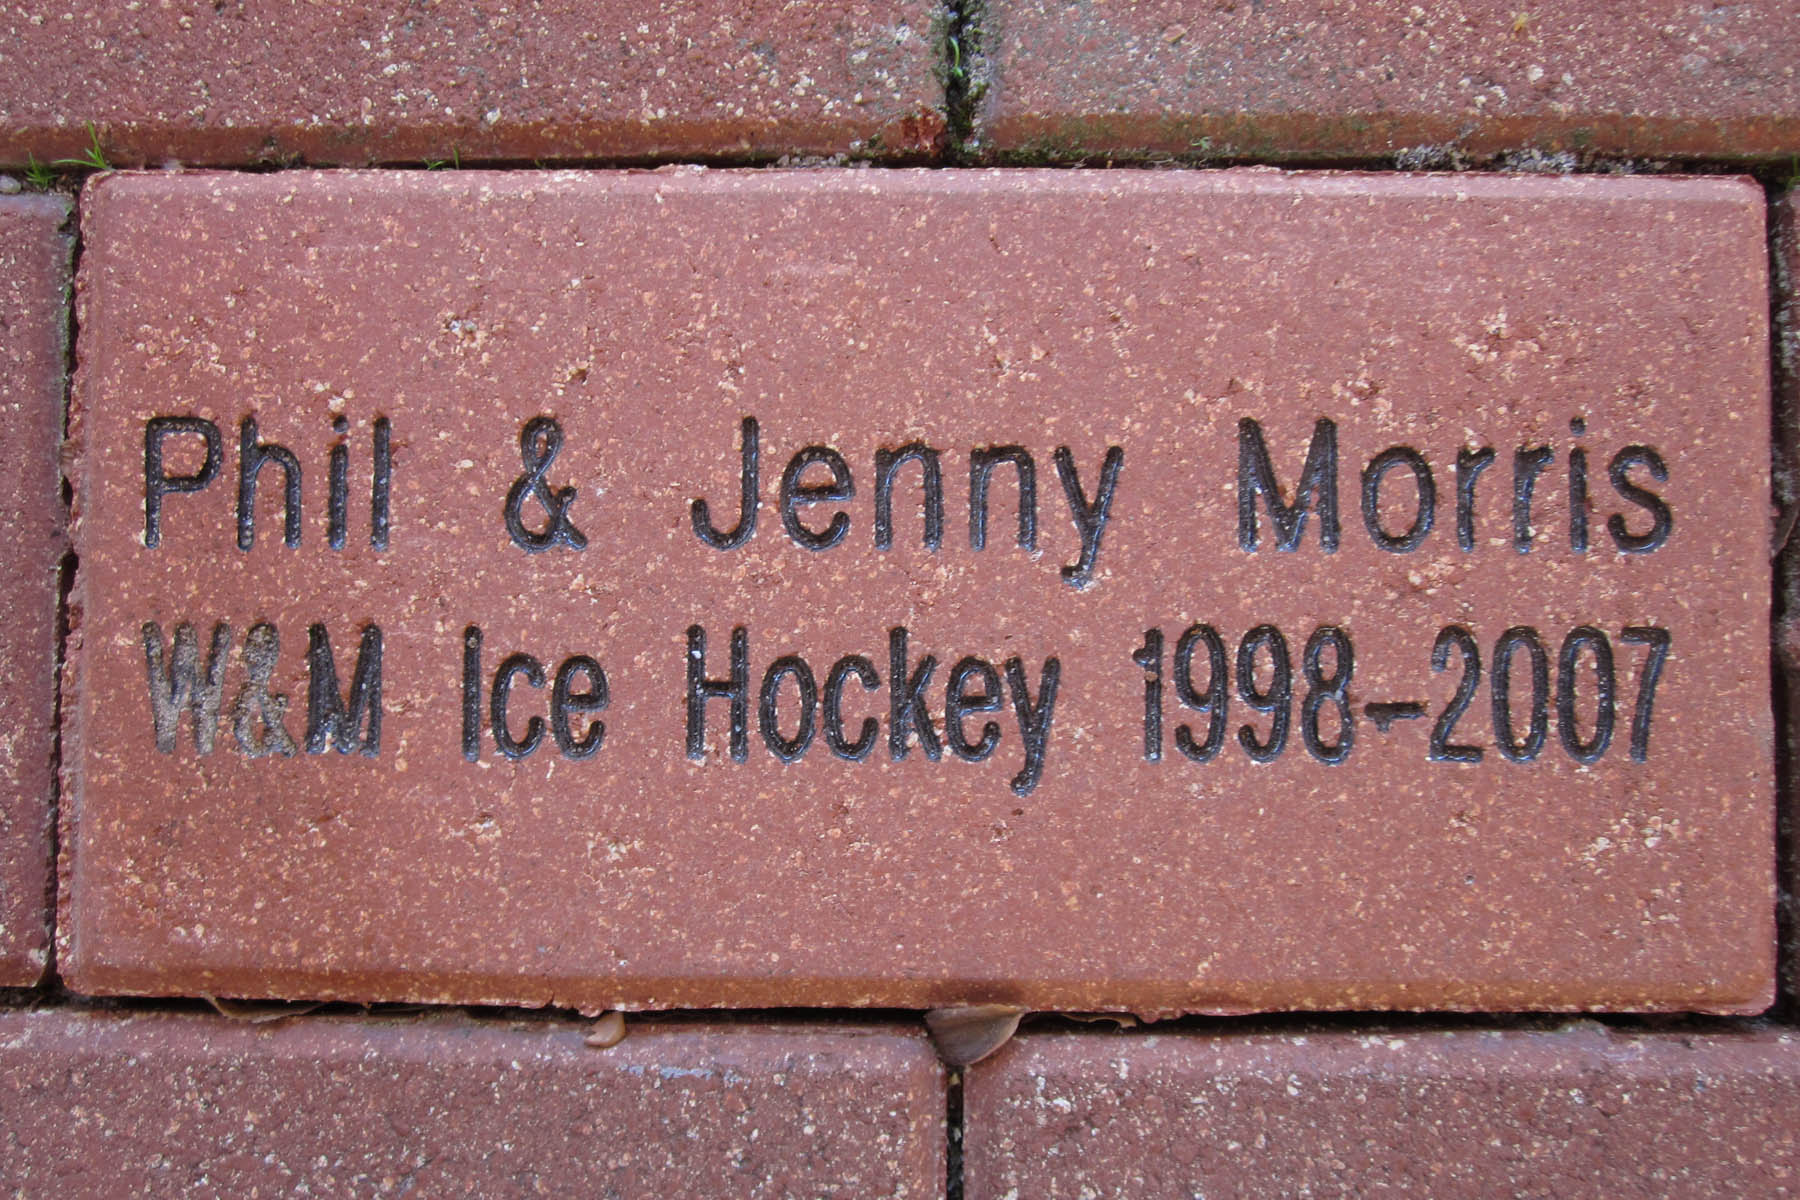 The Tribe Hockey booster club honored the commitment Phil and Jenny Morris made to the team by placing a brick in the Elizabeth J. and Thomas C. Clarke '22 Plaza of the Alumni House.